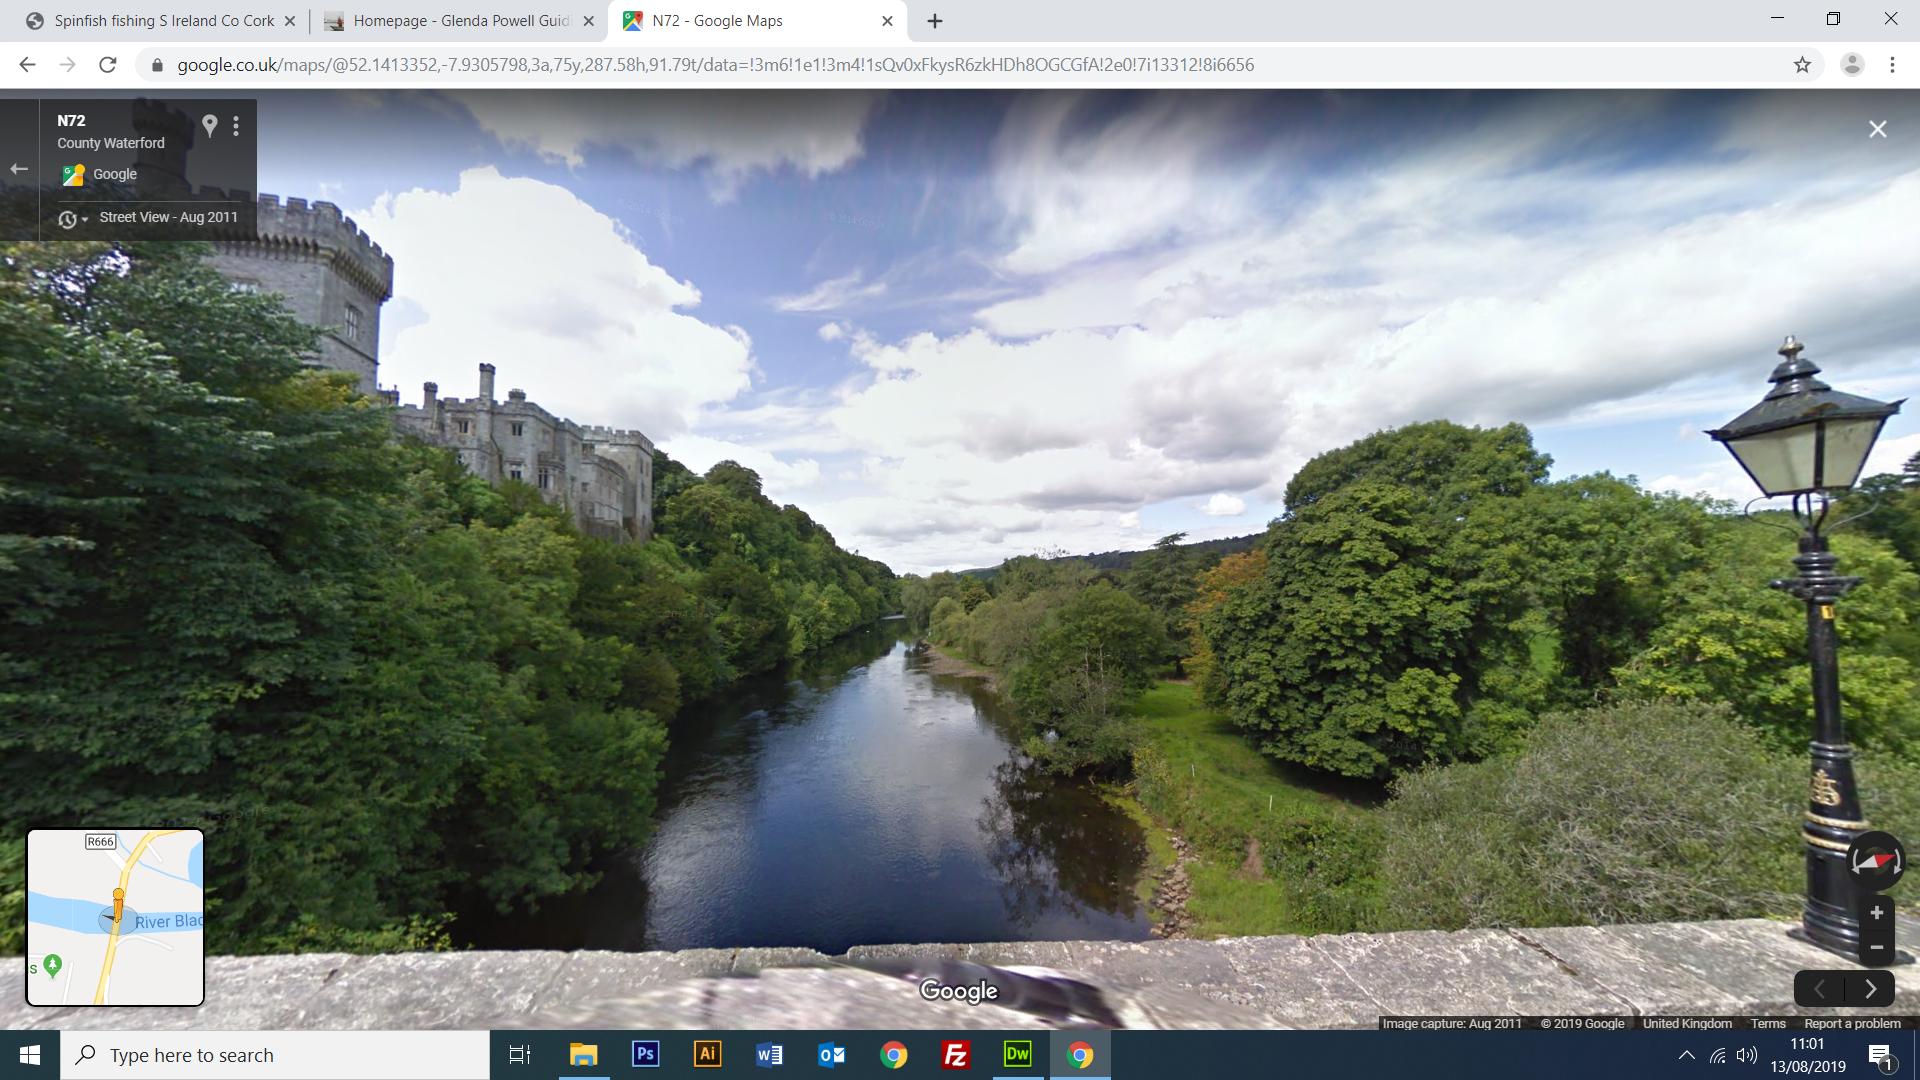 Google Street View the river Blackwater at Lismore Castle